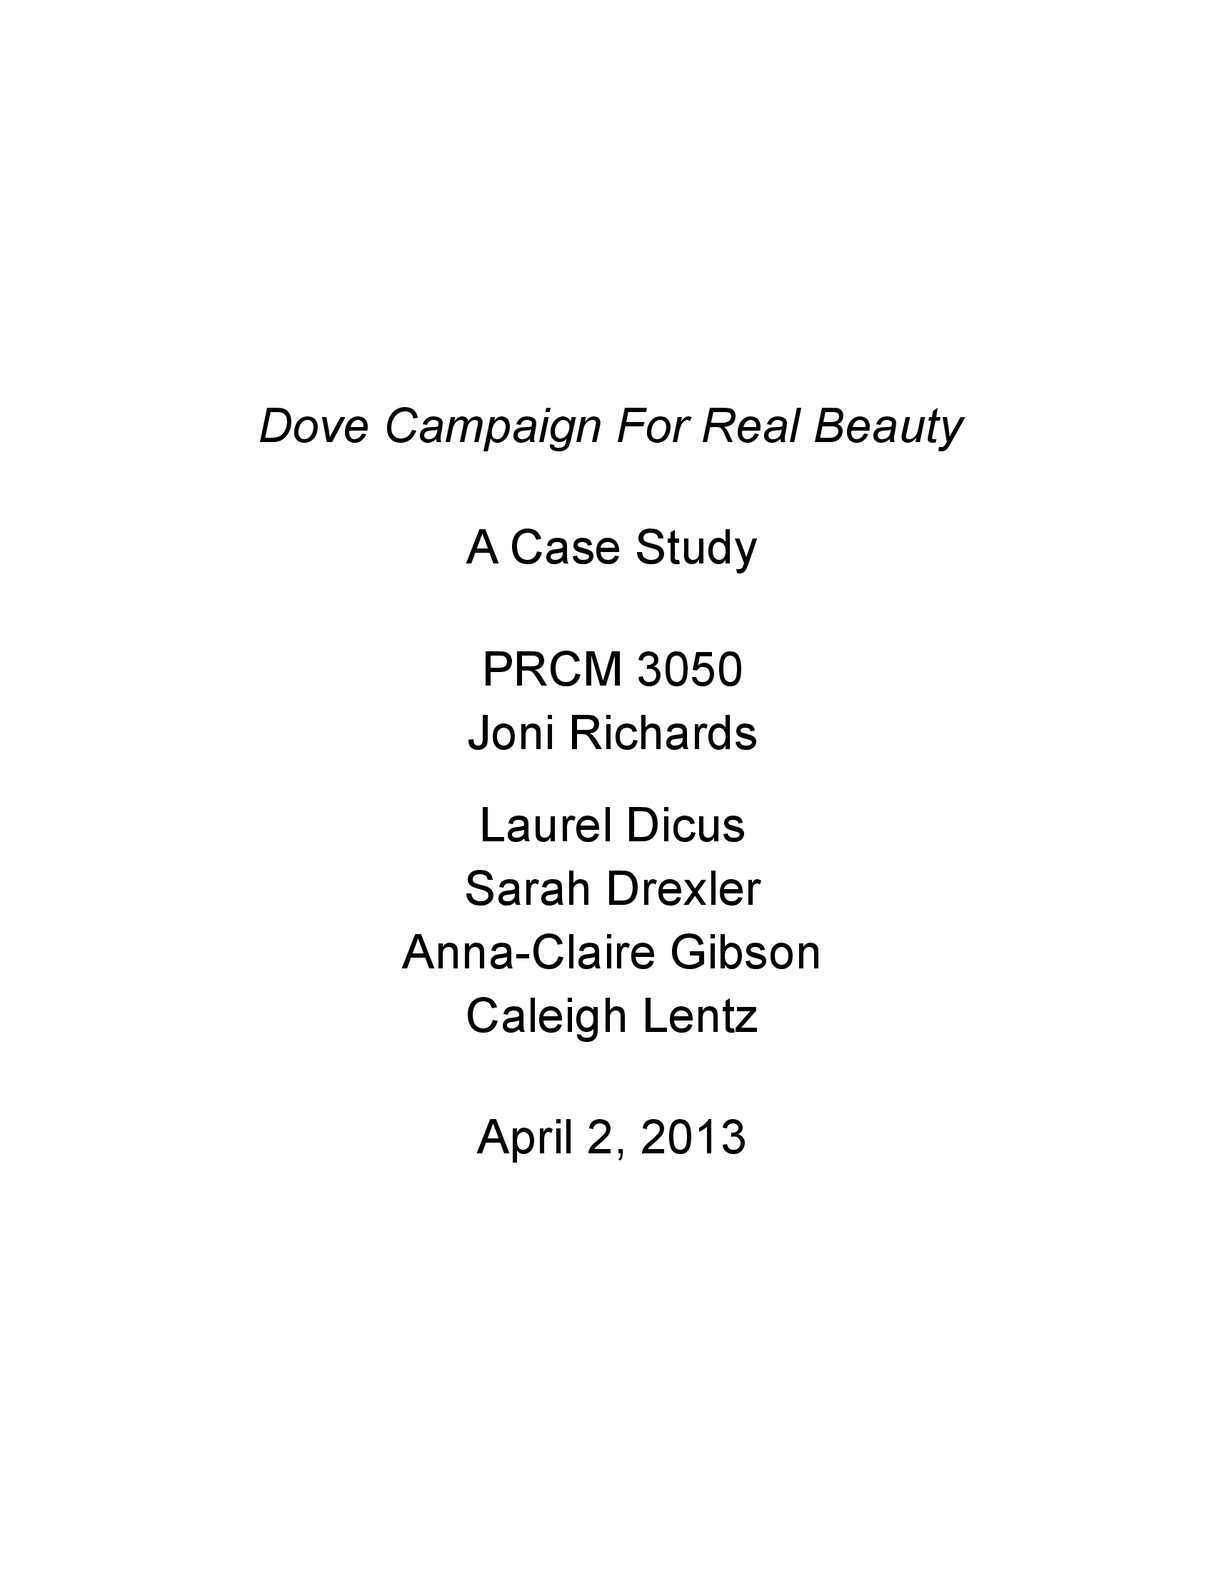 Case Study of The Dove for Real Beauty Campaign